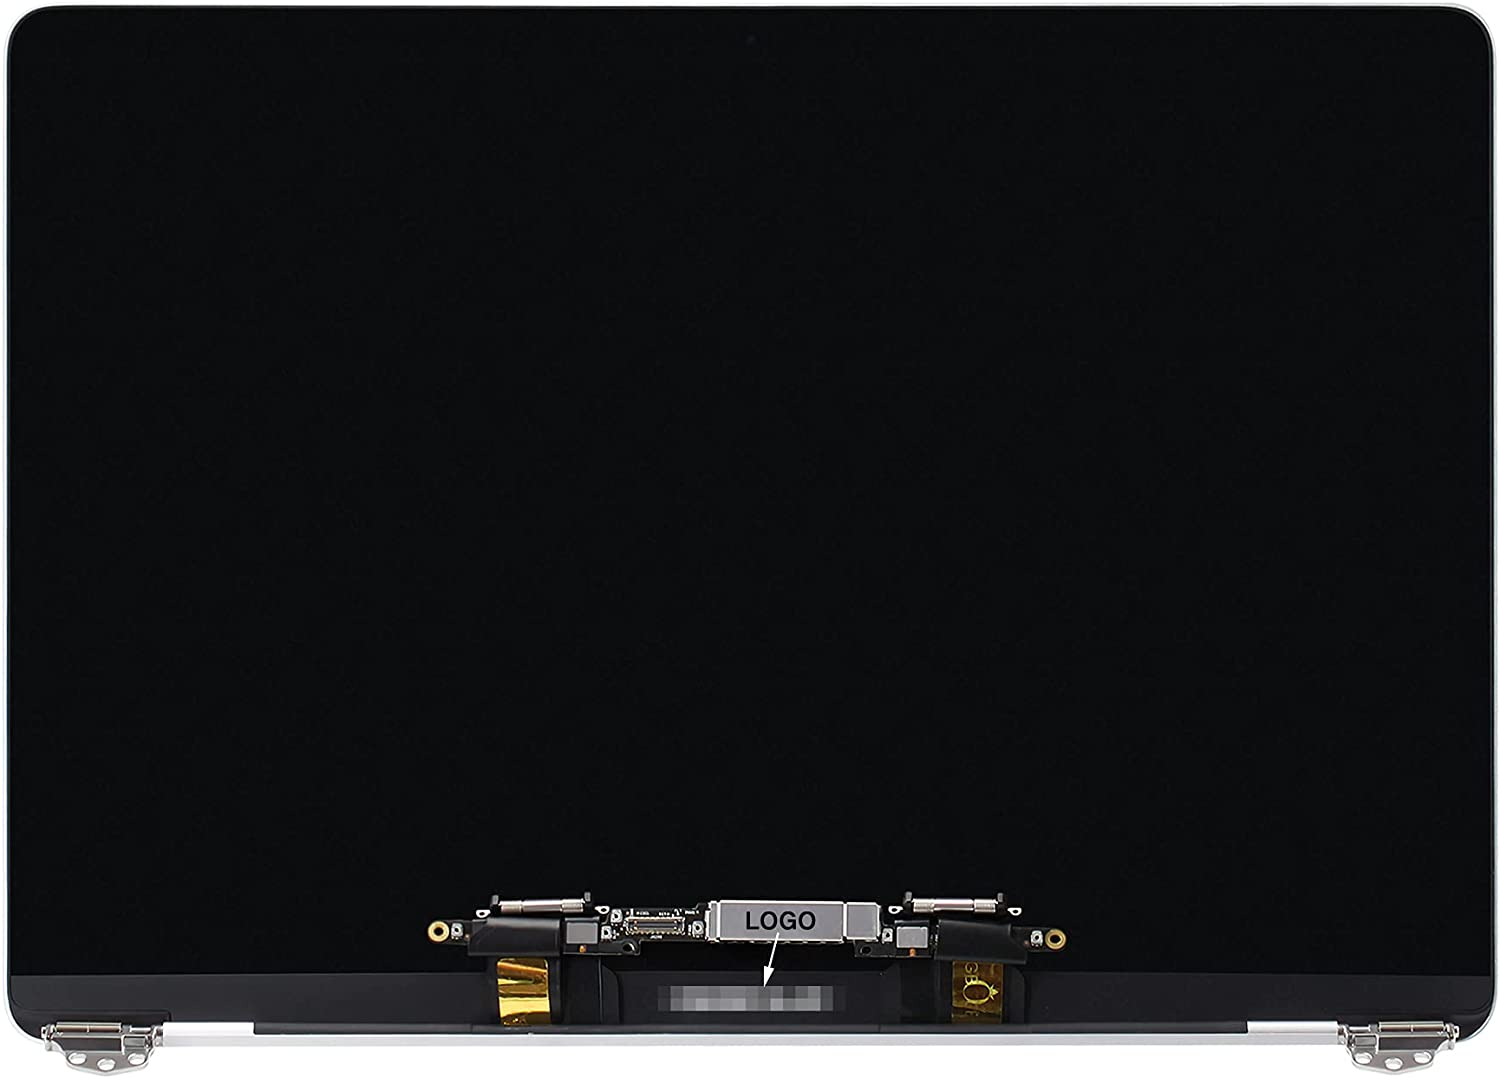 """GBOLE Replacement Screen for MacBook Pro Retina 13.3"""" A2289 2020 Year Full LCD Display Screen Assembly EMC 3456 MXK32LL/A MXK52LL/A MXK62LL/A MXK72LL/A 2560x1600 (Space Grey)"""